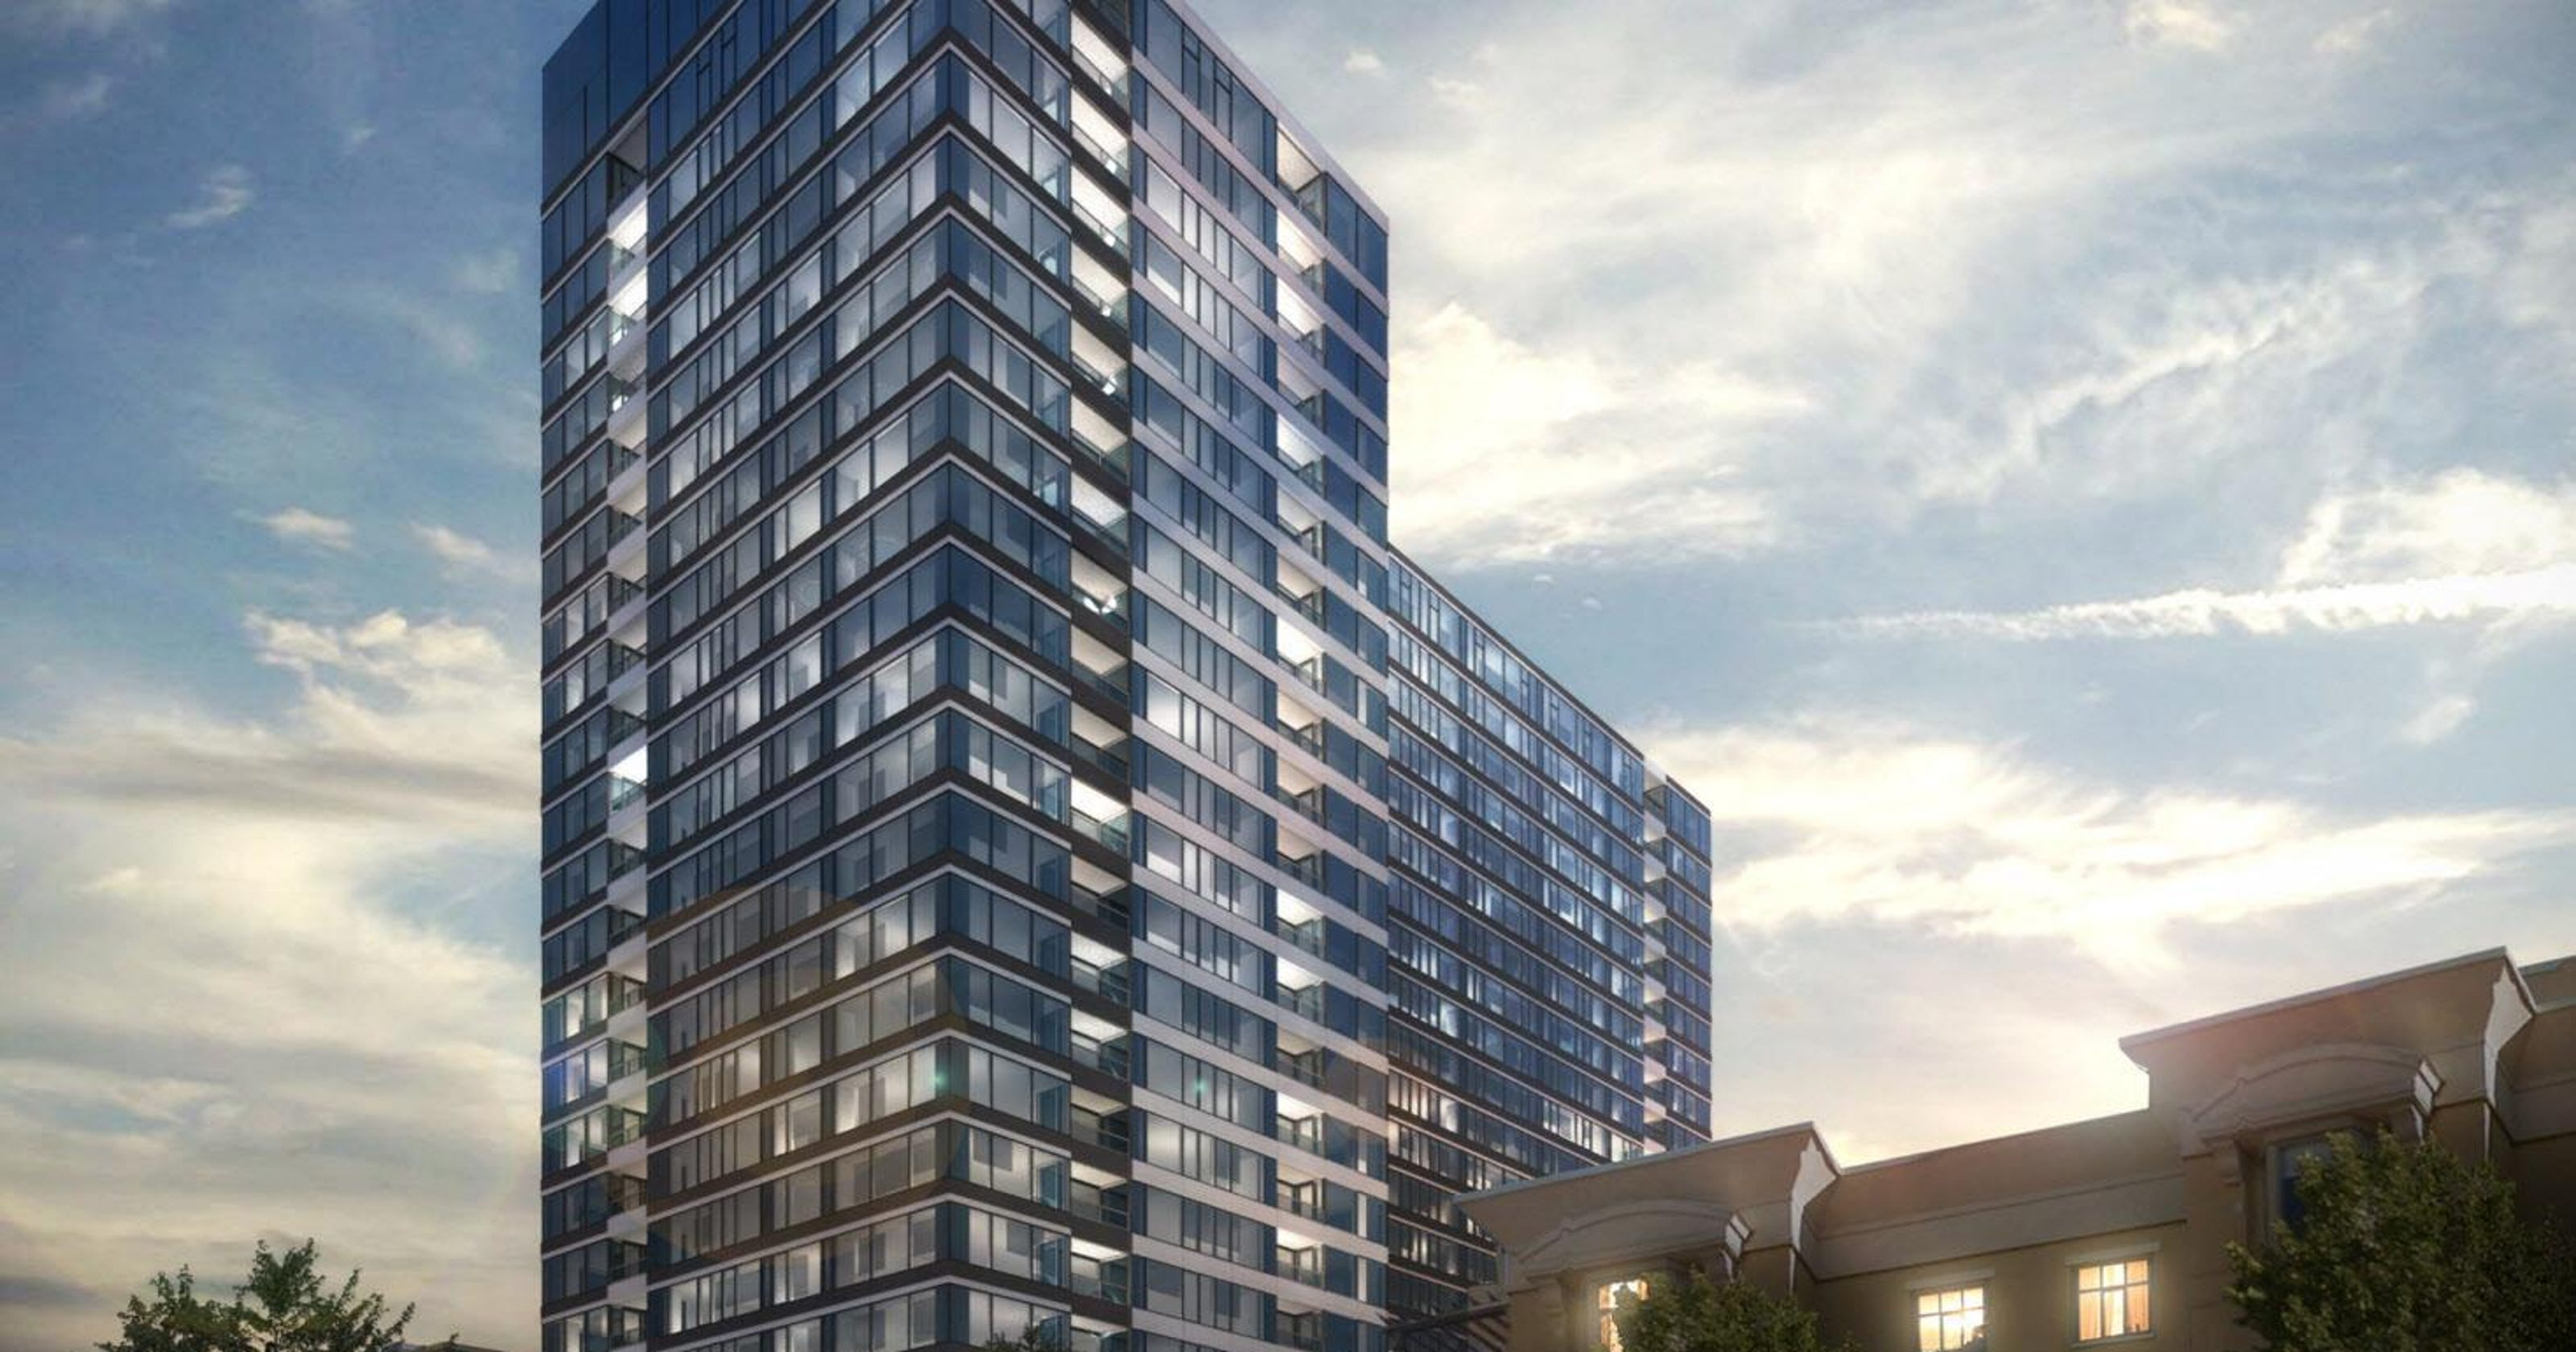 Mandel unveils $100 million luxury apartment tower for east side